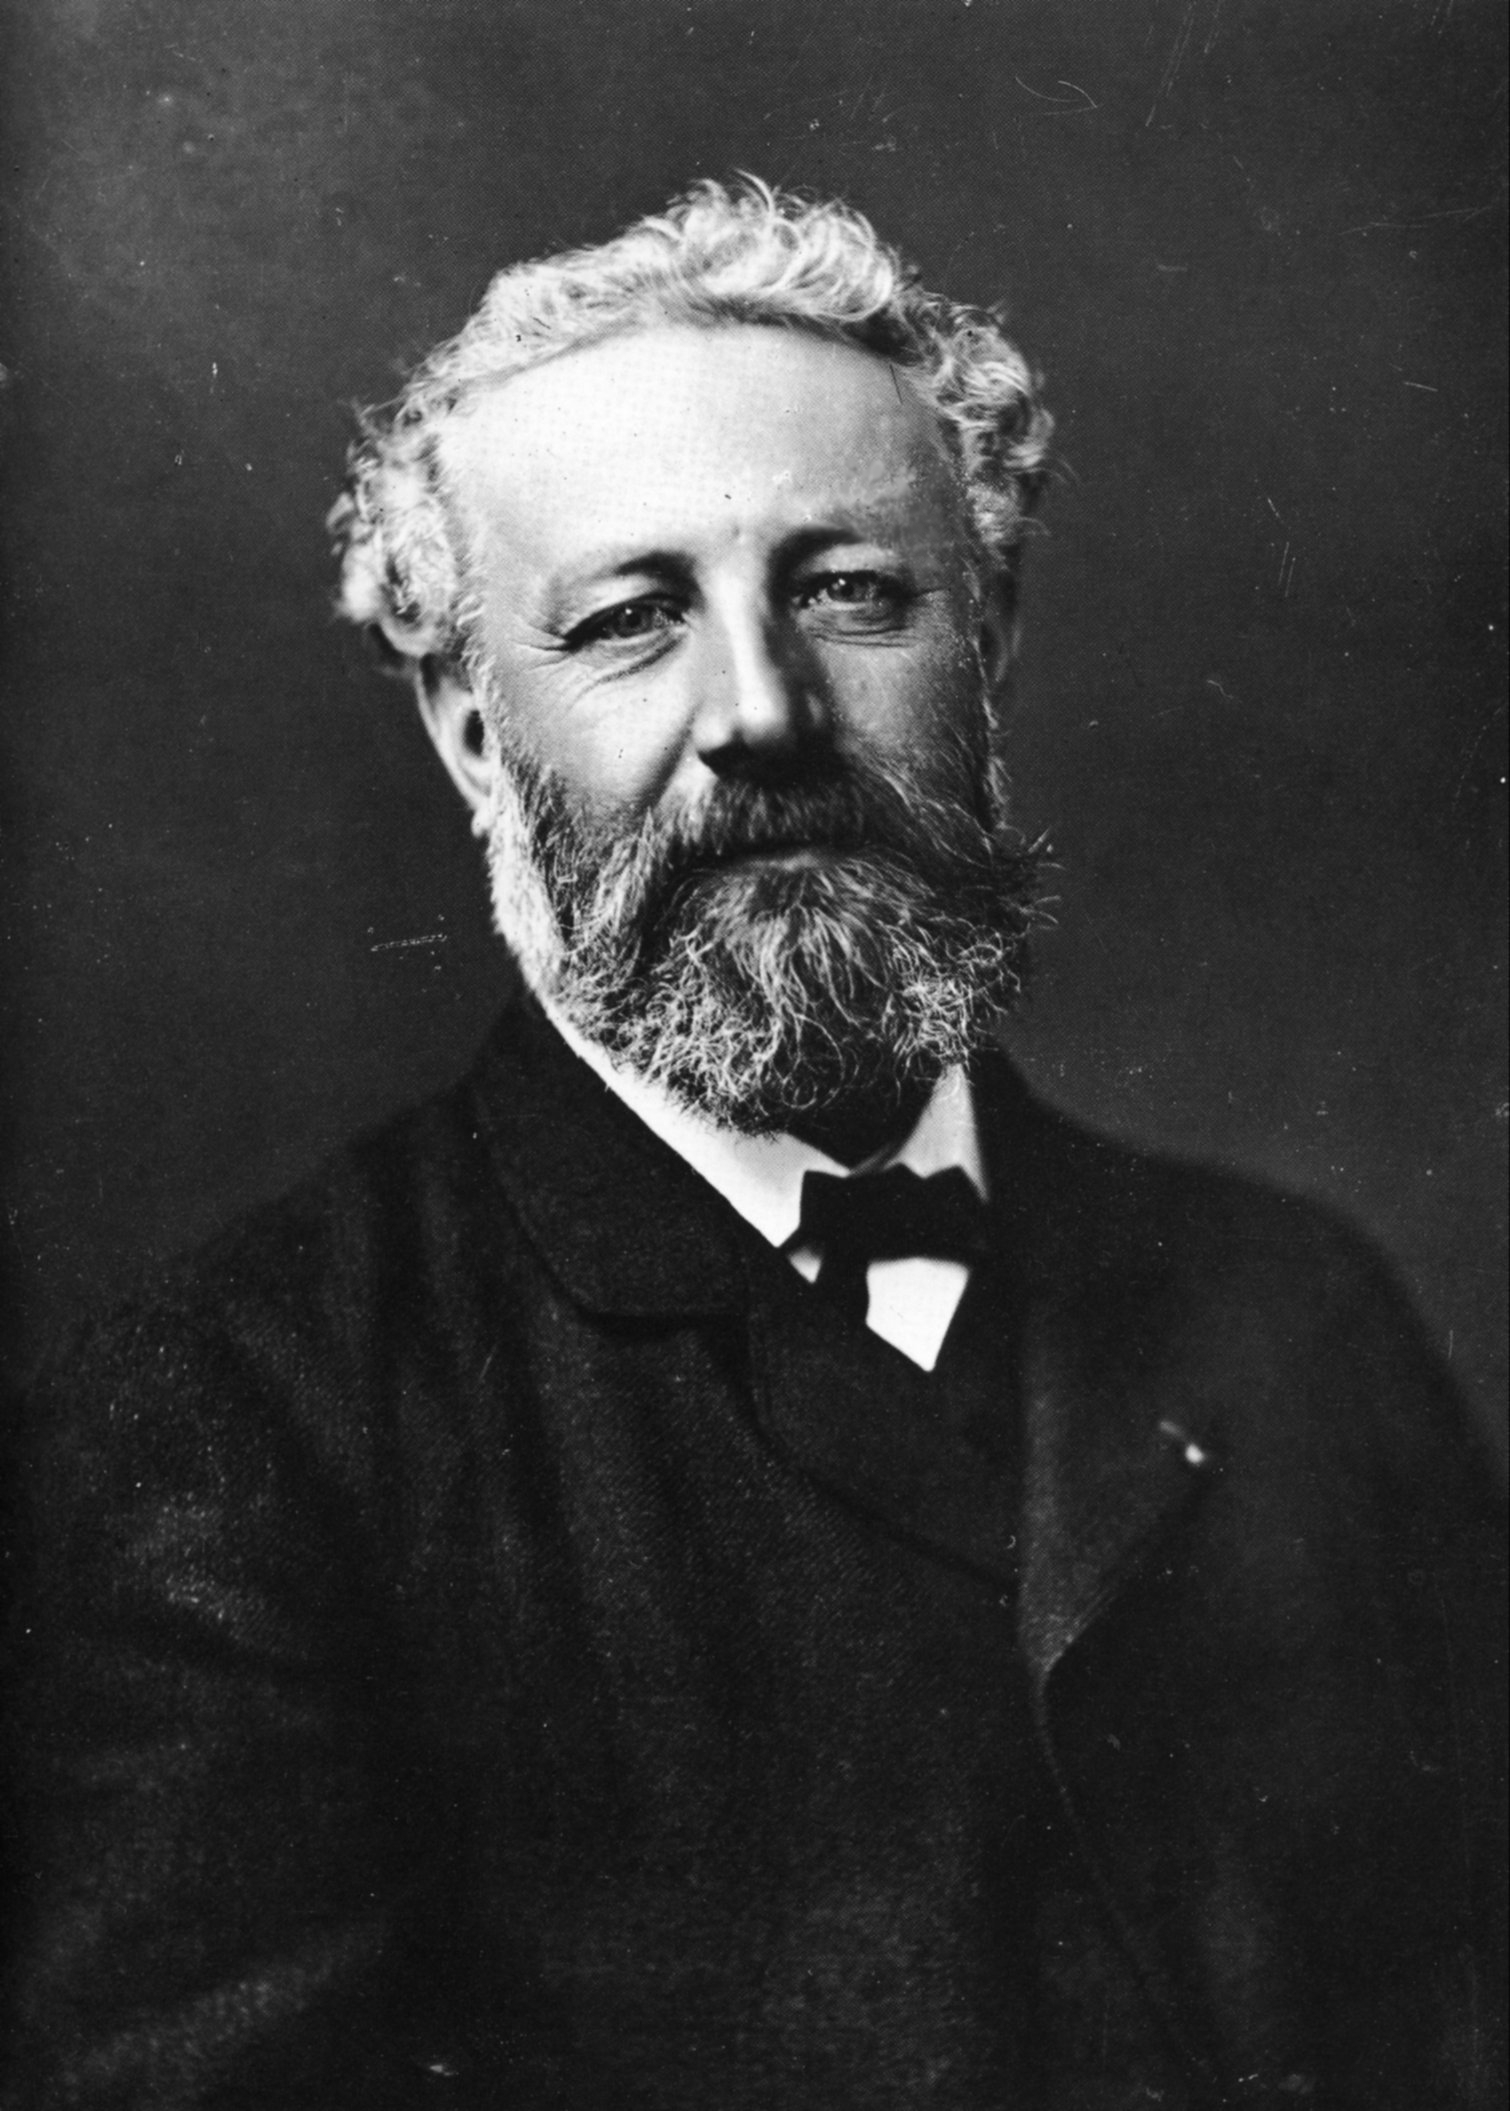 Met een Franse slag. Jules Verne in science fiction